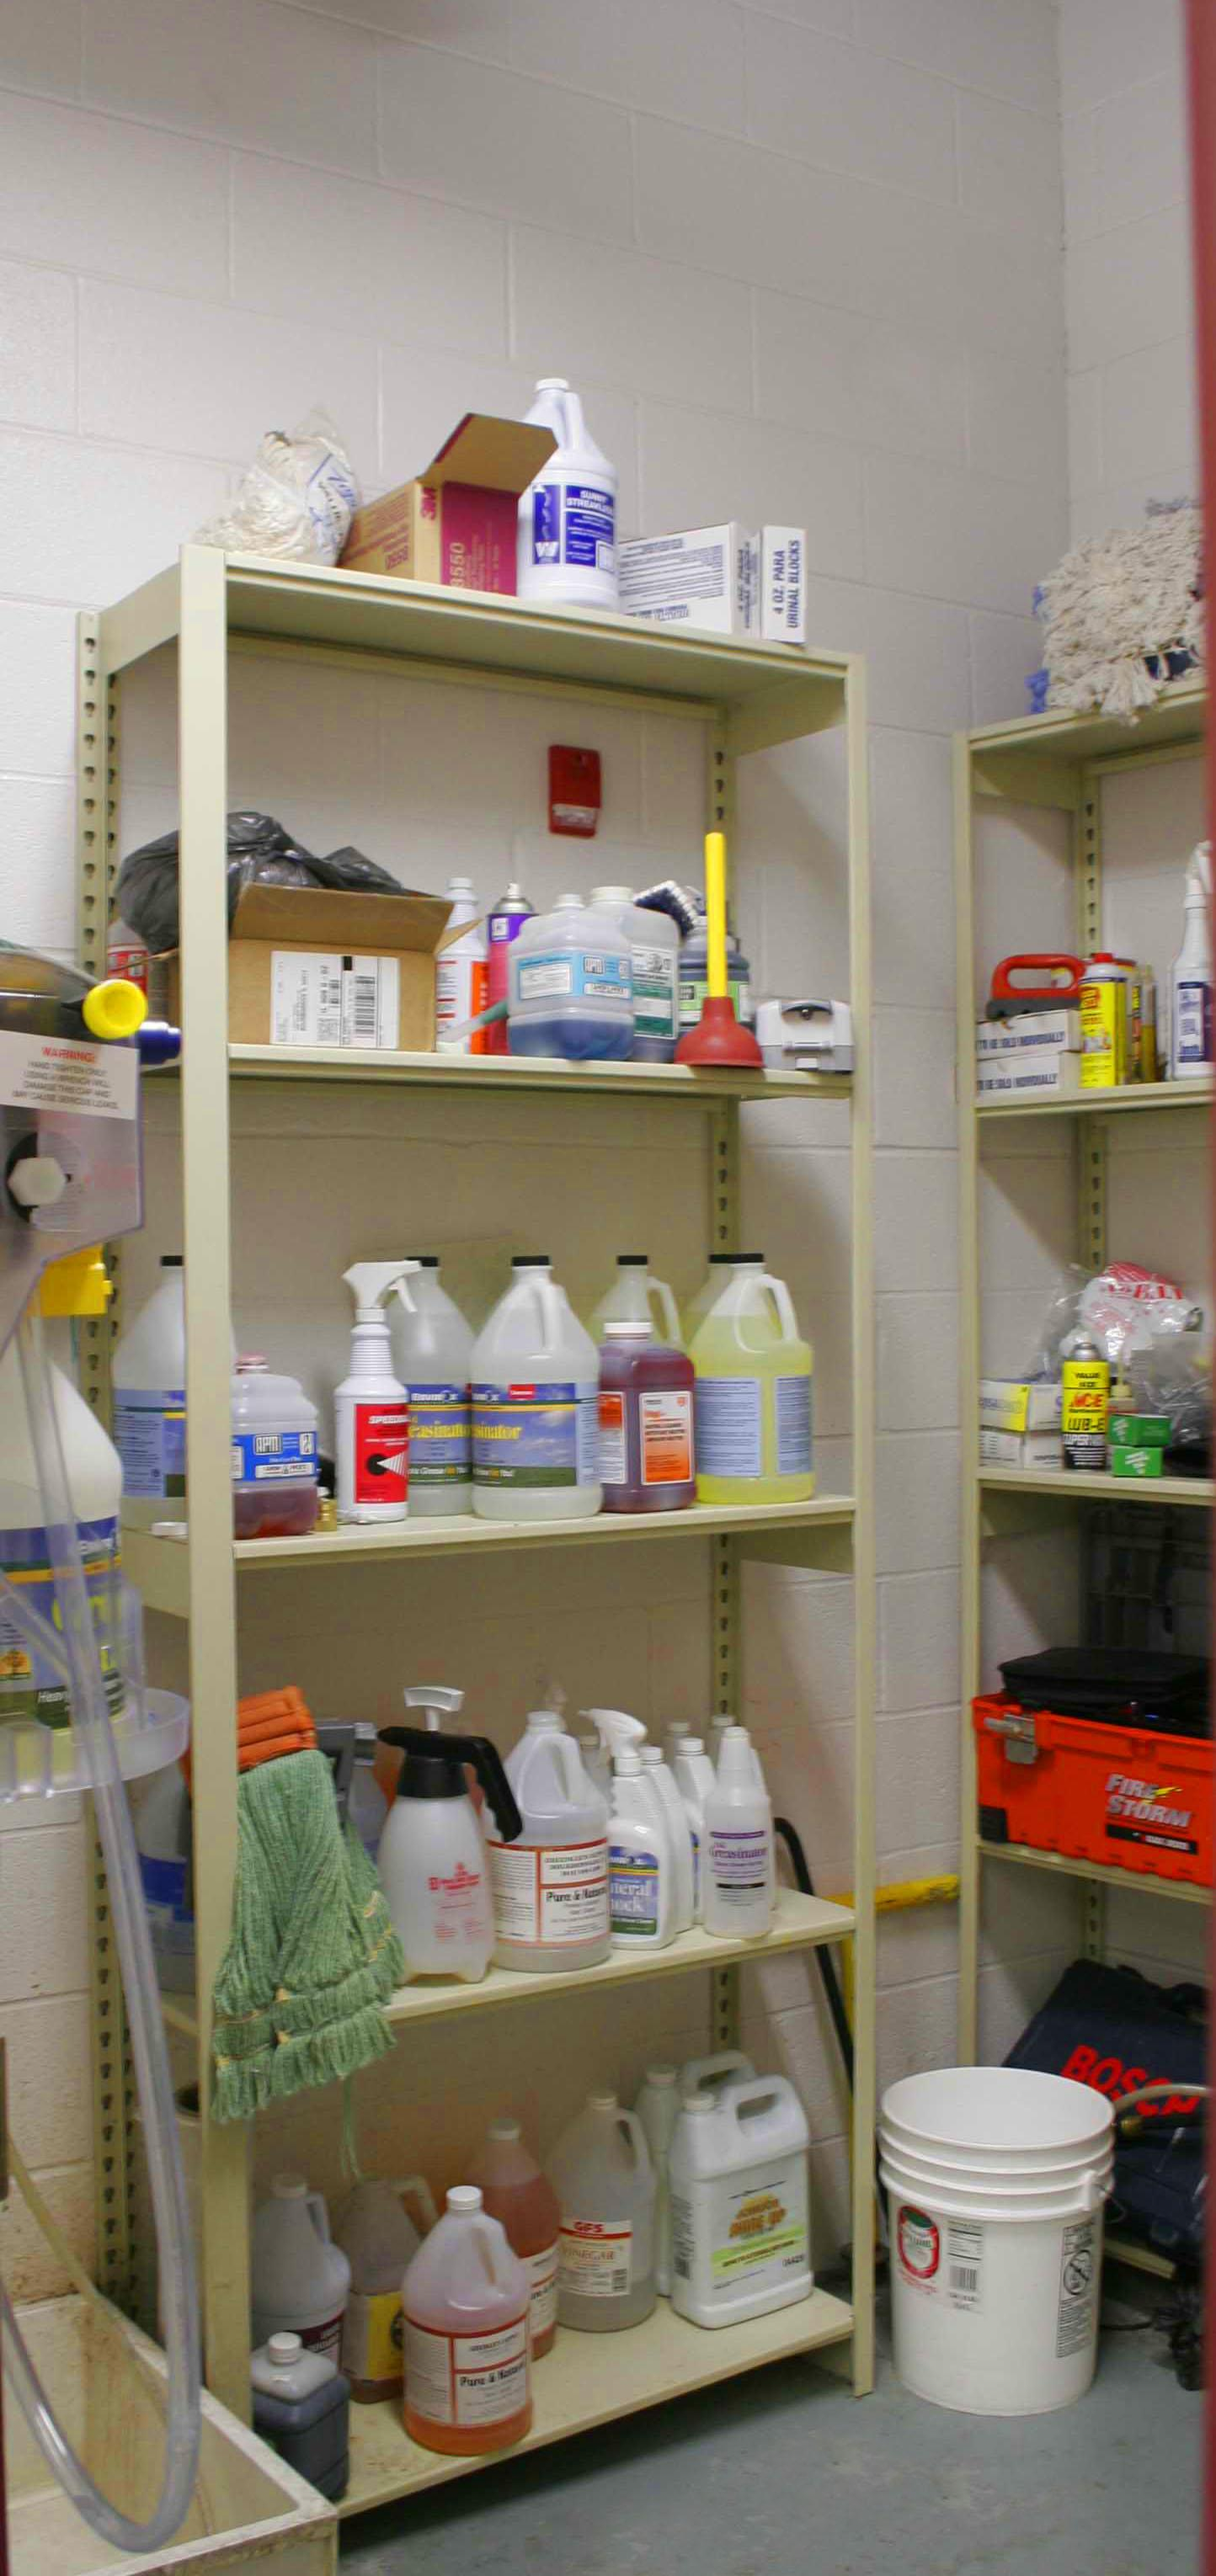 Janitorial supplies on open Aurora Shelving in housekeeping closet.